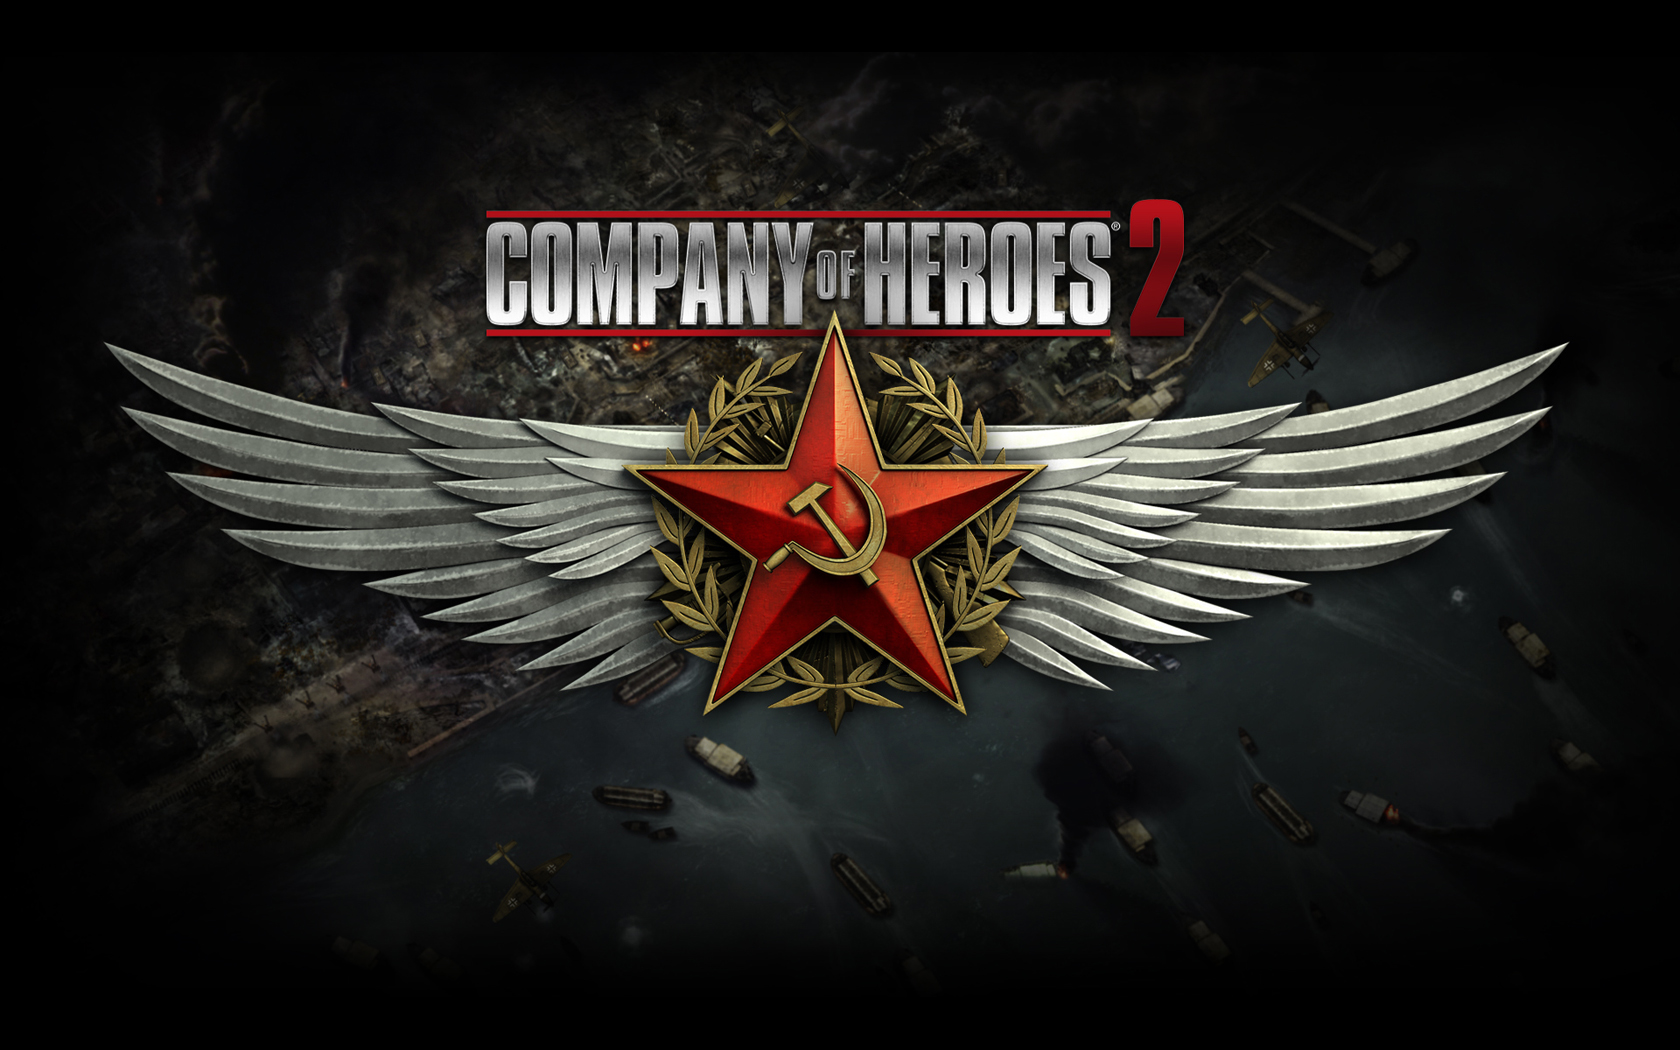 Company of Heroes 2 Video Game 993.32 Kb